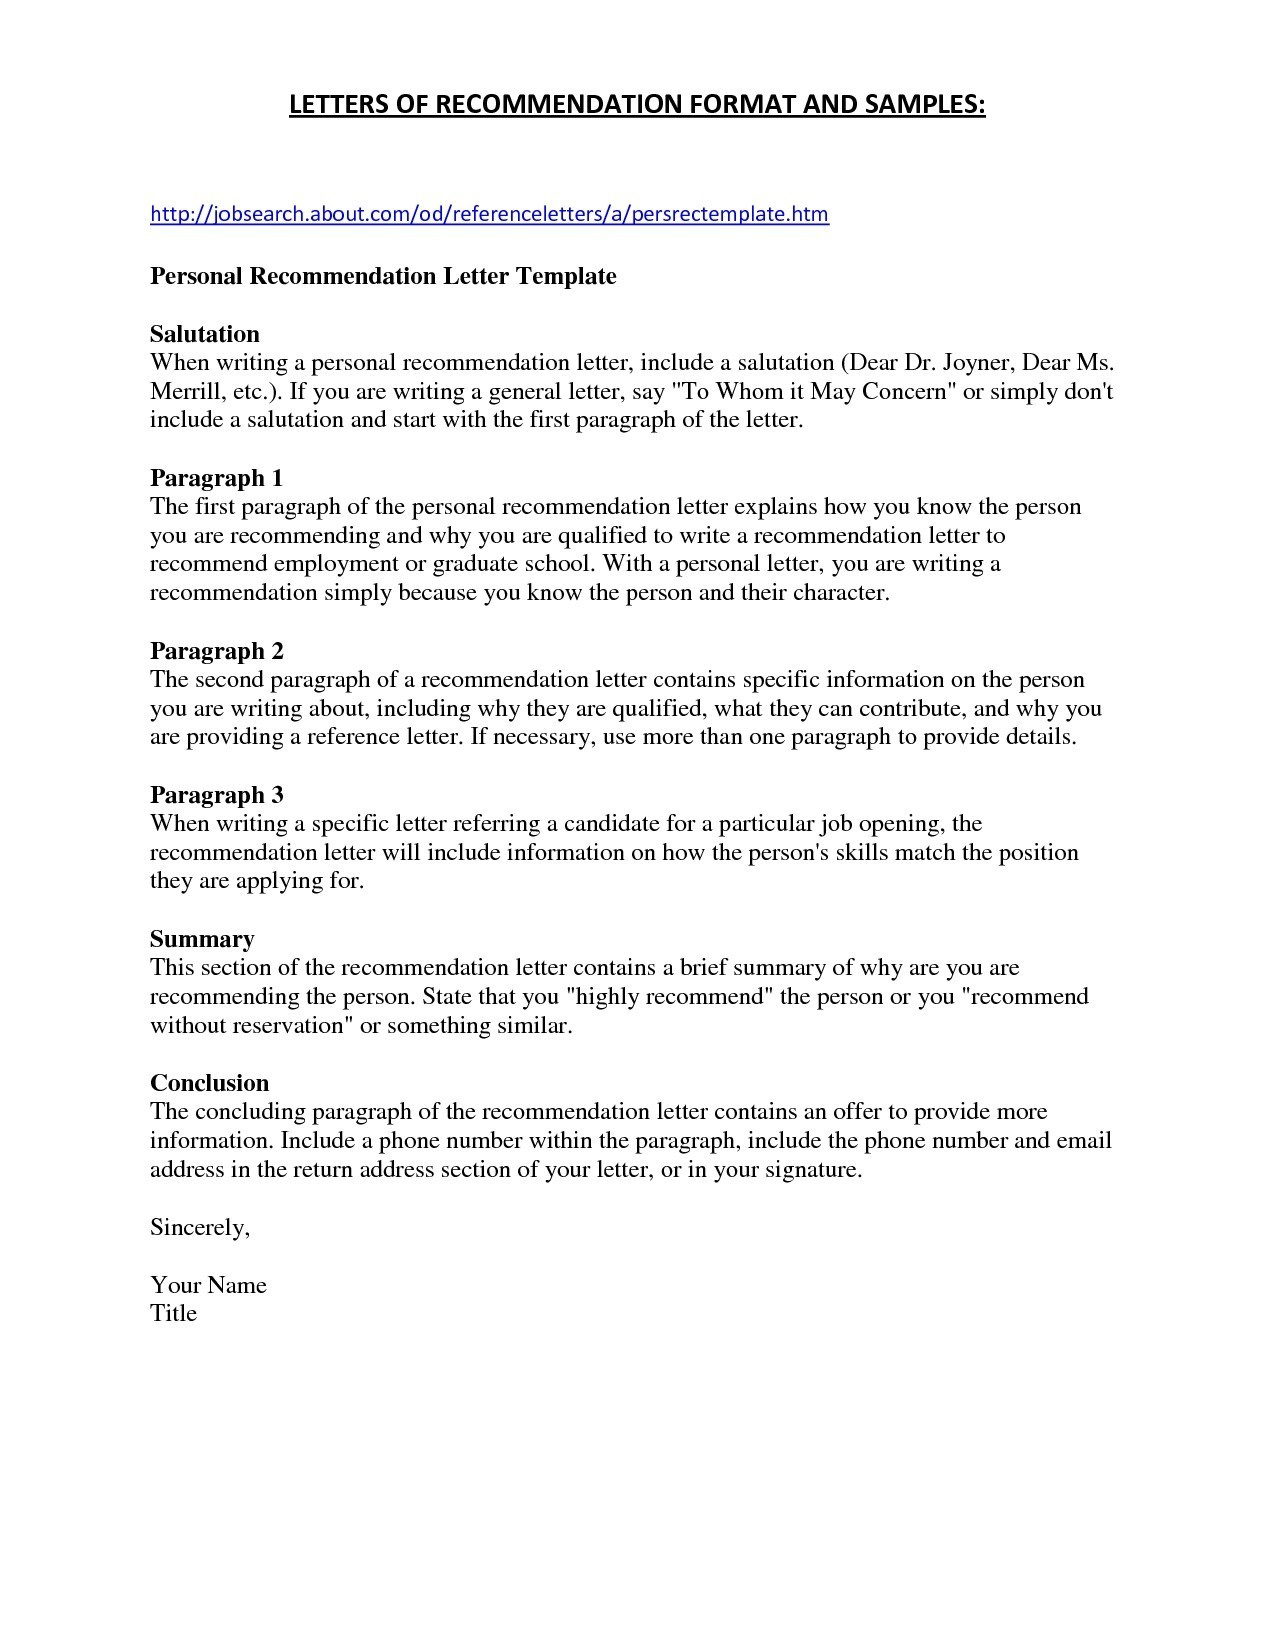 Emotional Support Animal Letter Template - Emotional Support Animal Letter Template Luxury How to Write A How